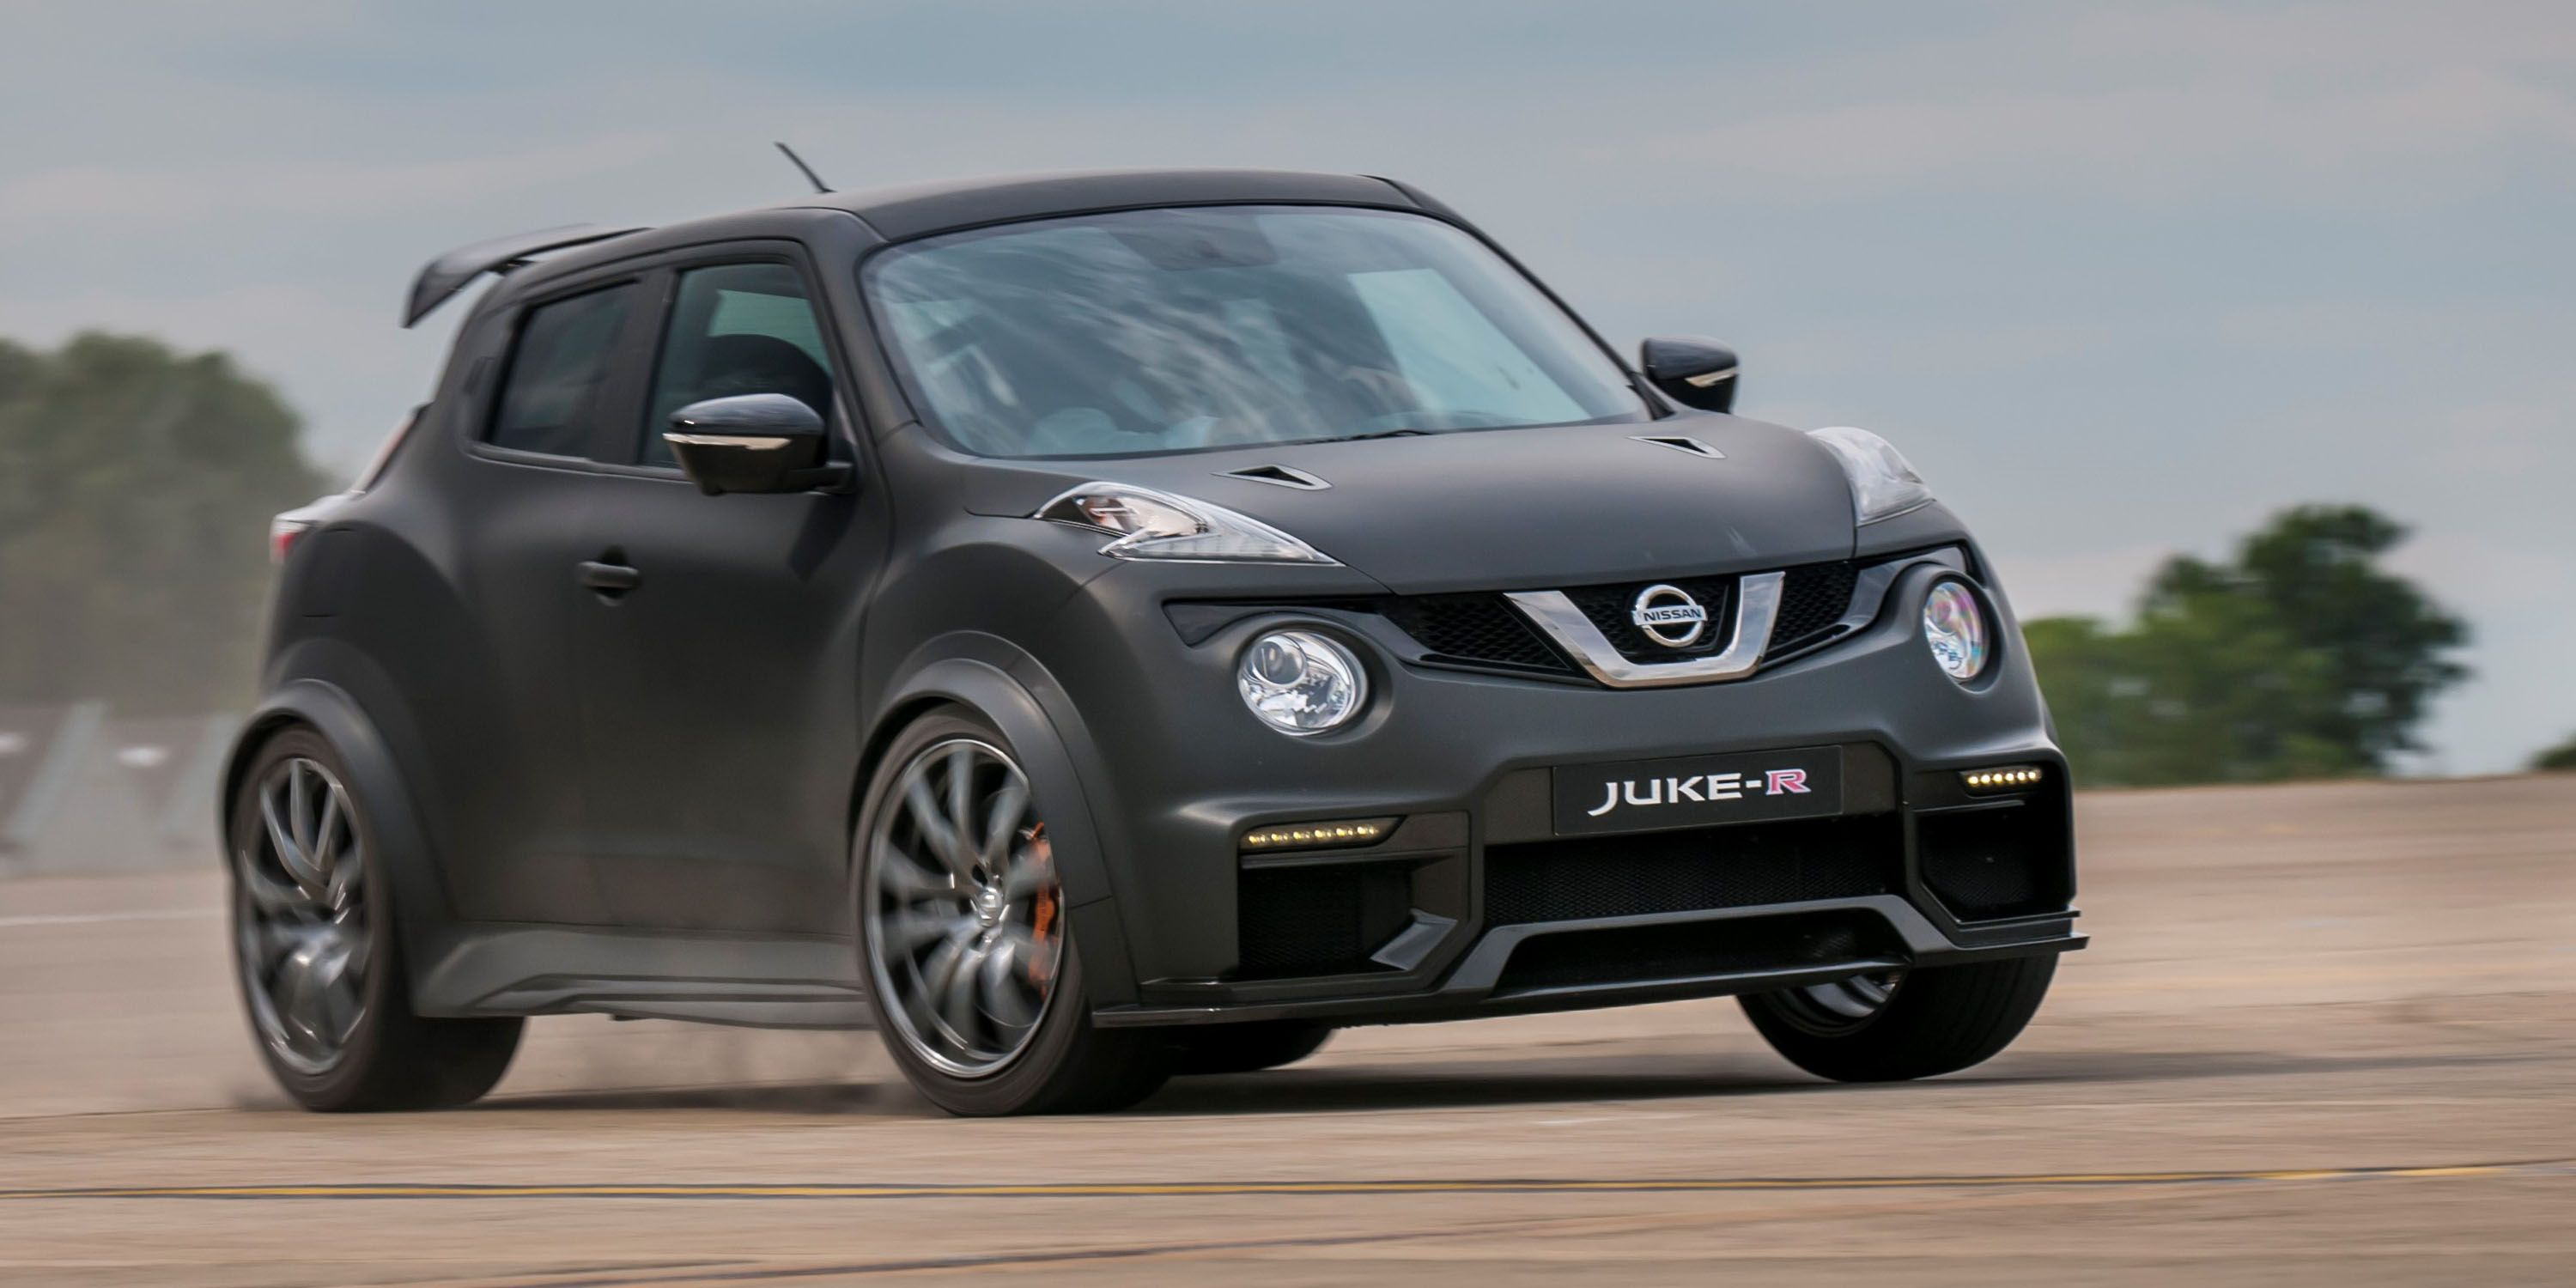 New Nissan Juke-R: Same as the old, but now with 600 hp